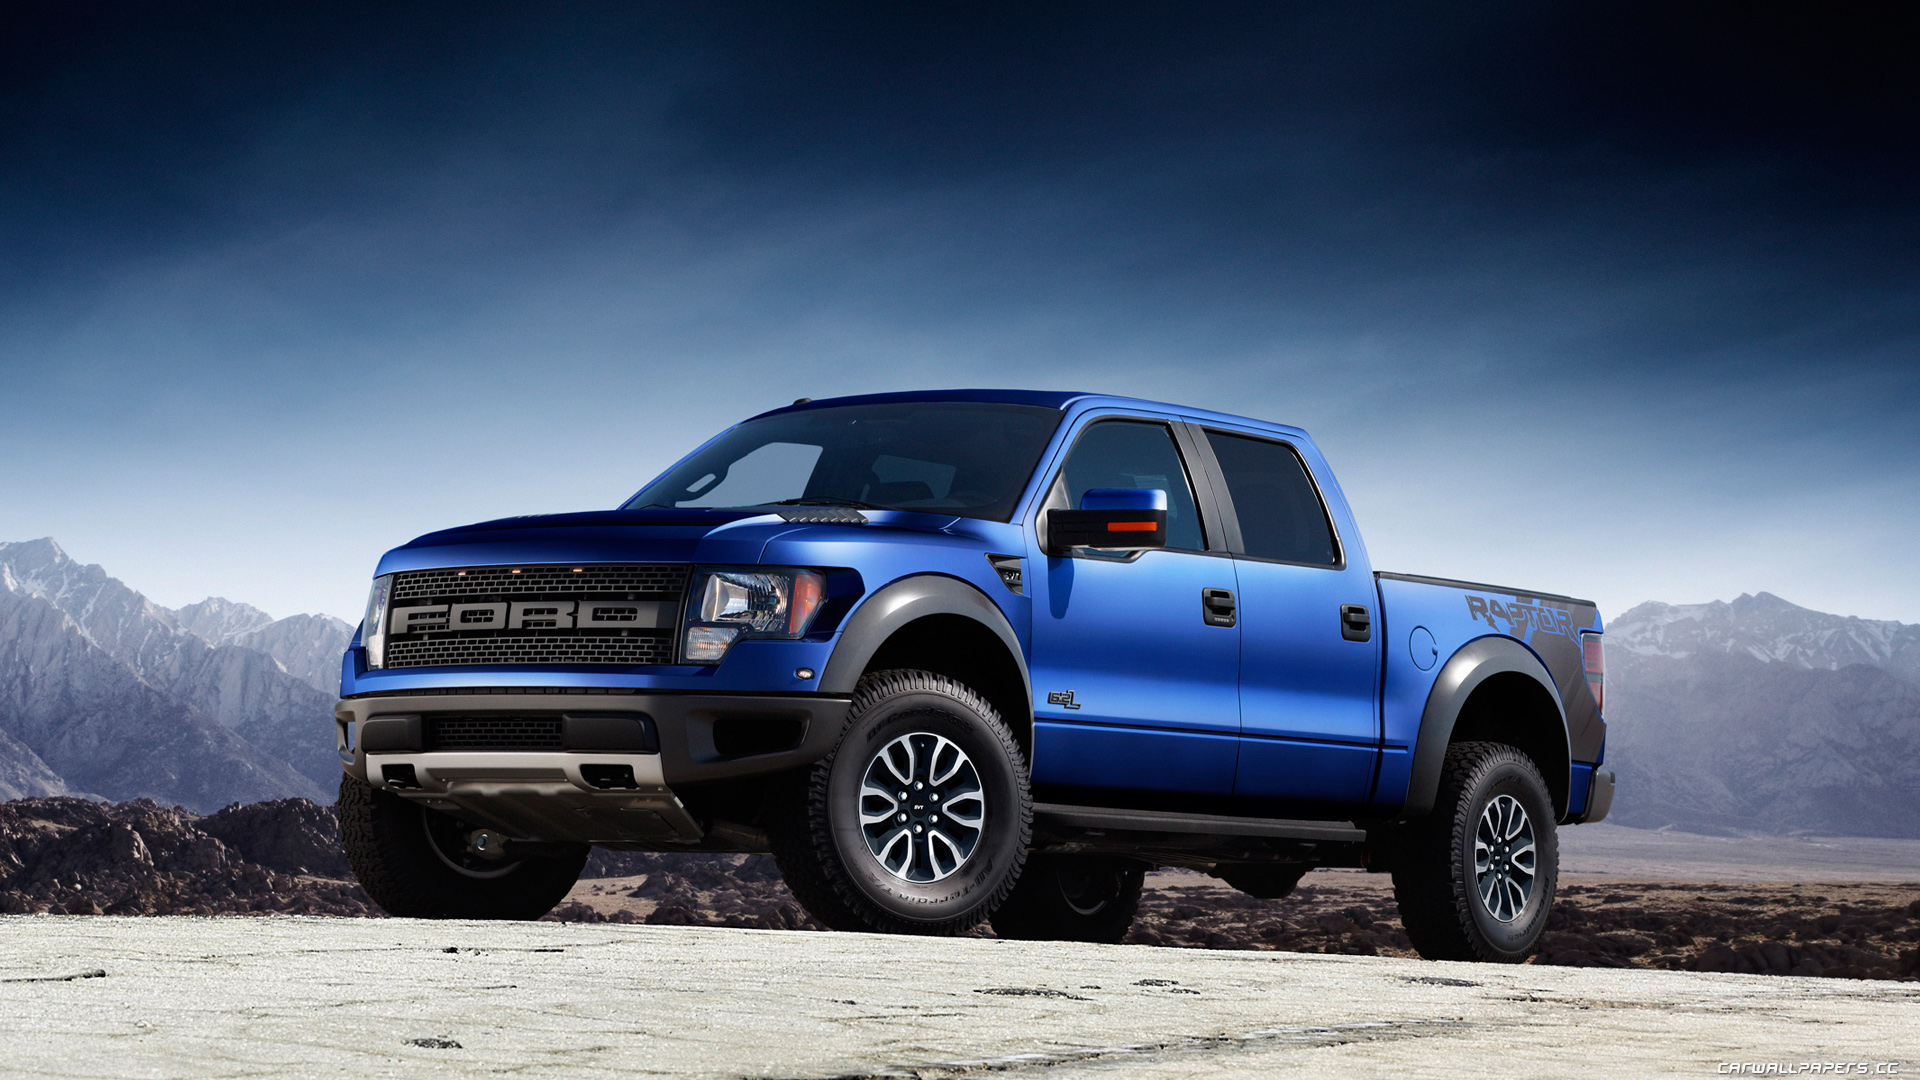 Ford F150 HD Desktop Wallpaper HD Desktop Wallpaper 1920x1080